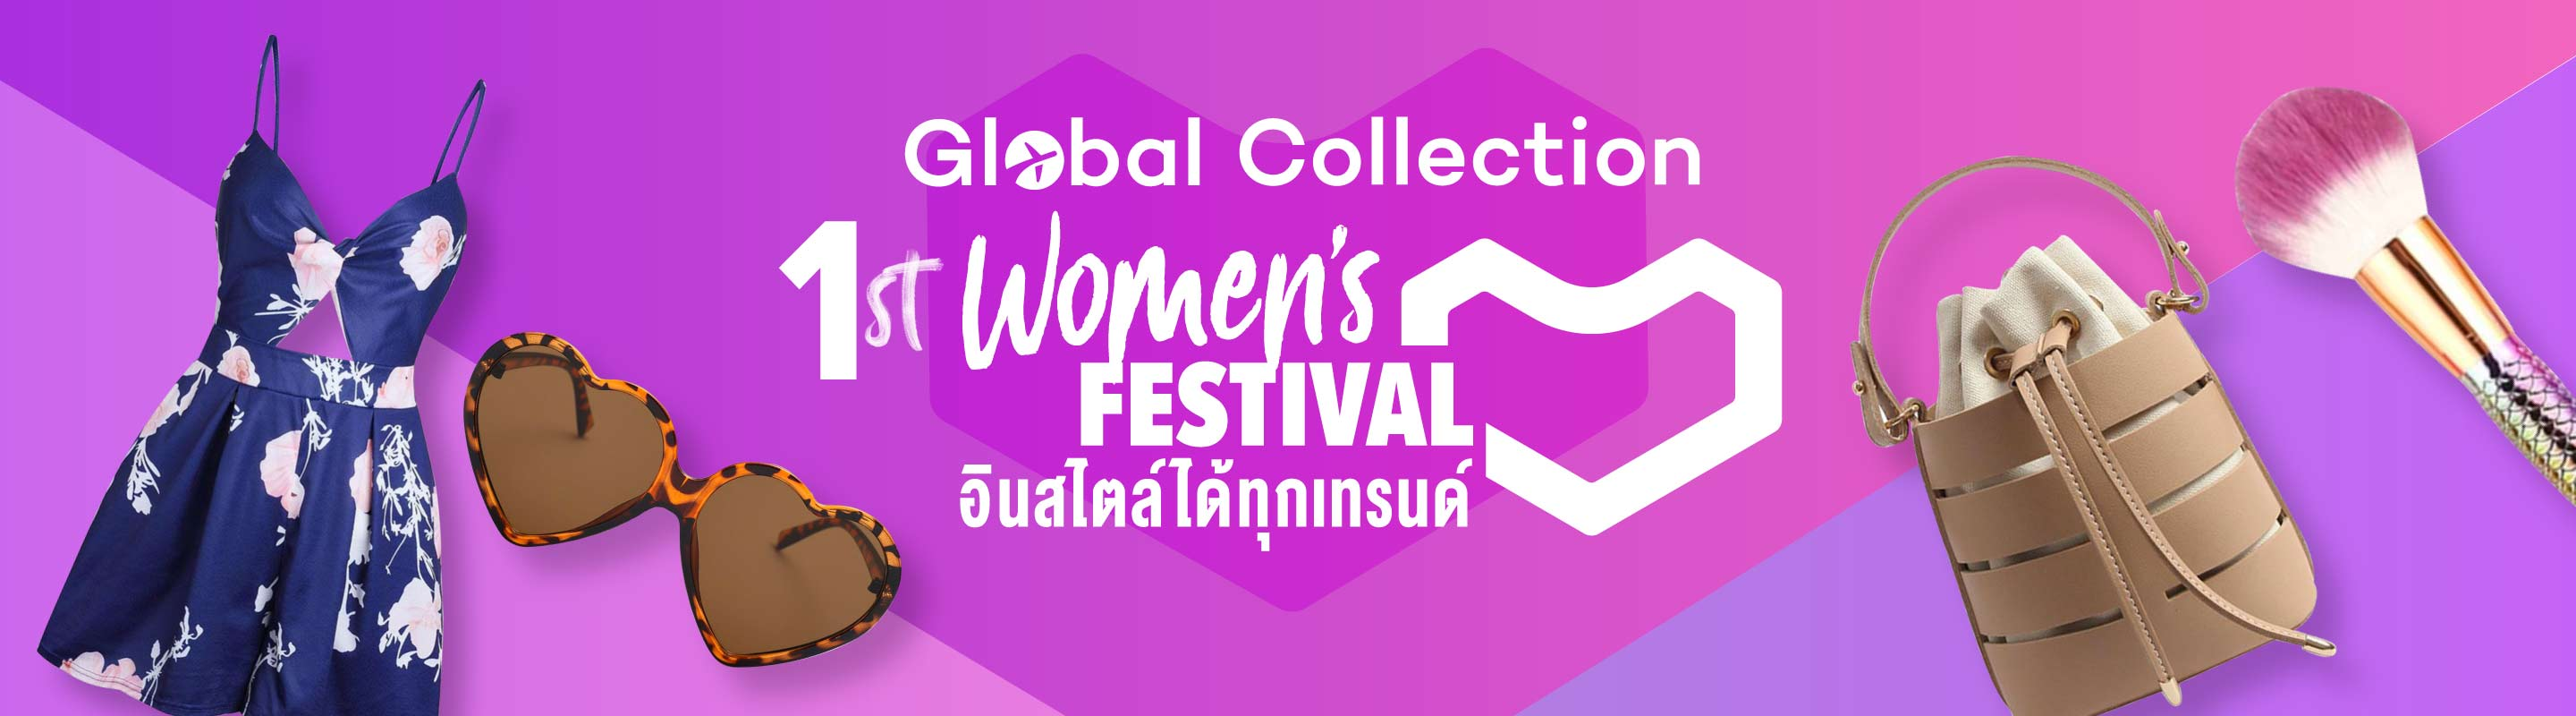 Women Festival Global Collection